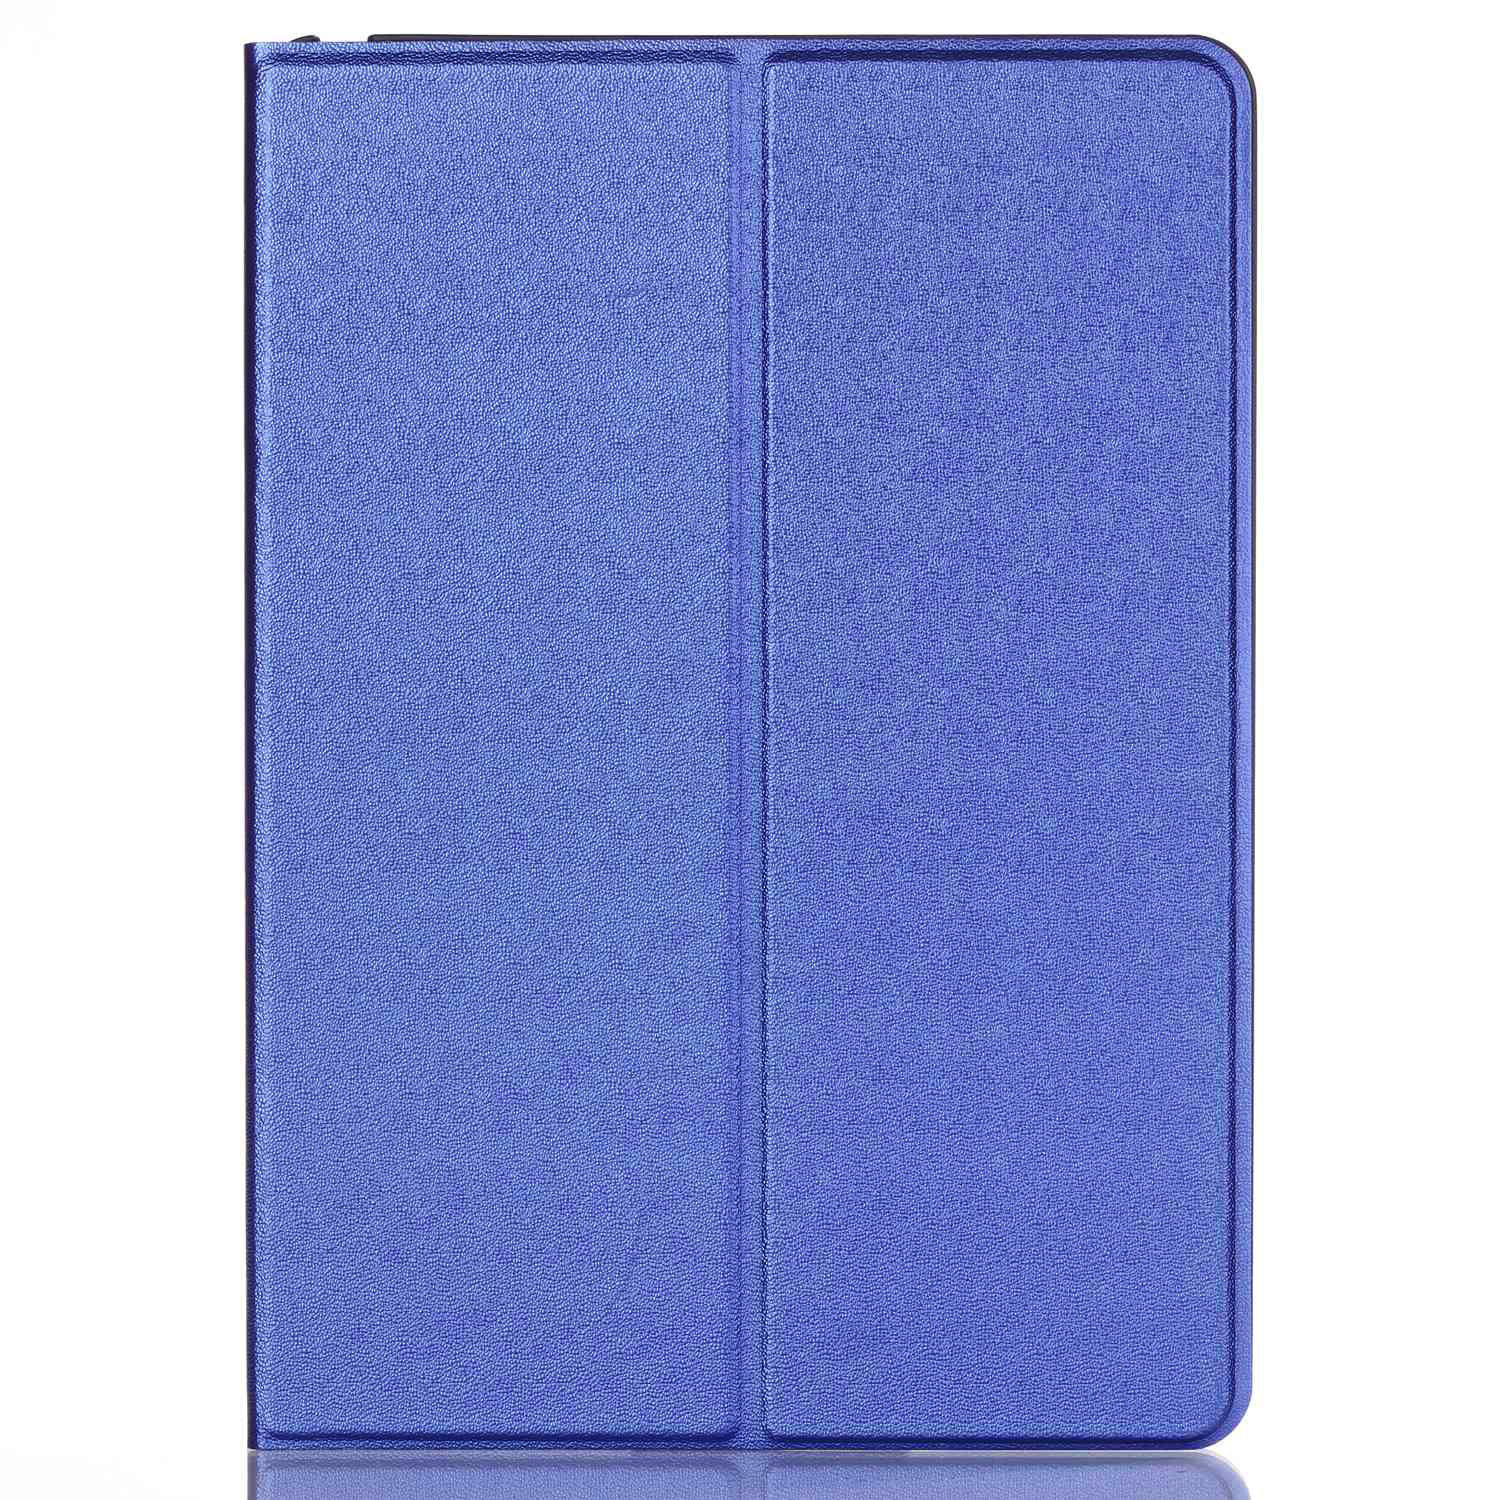 Custodia-Per-Apple-IPAD-Pro-IN-9-7-Pollici-Case-Cover-Protettiva-Skin-Shell miniatura 18